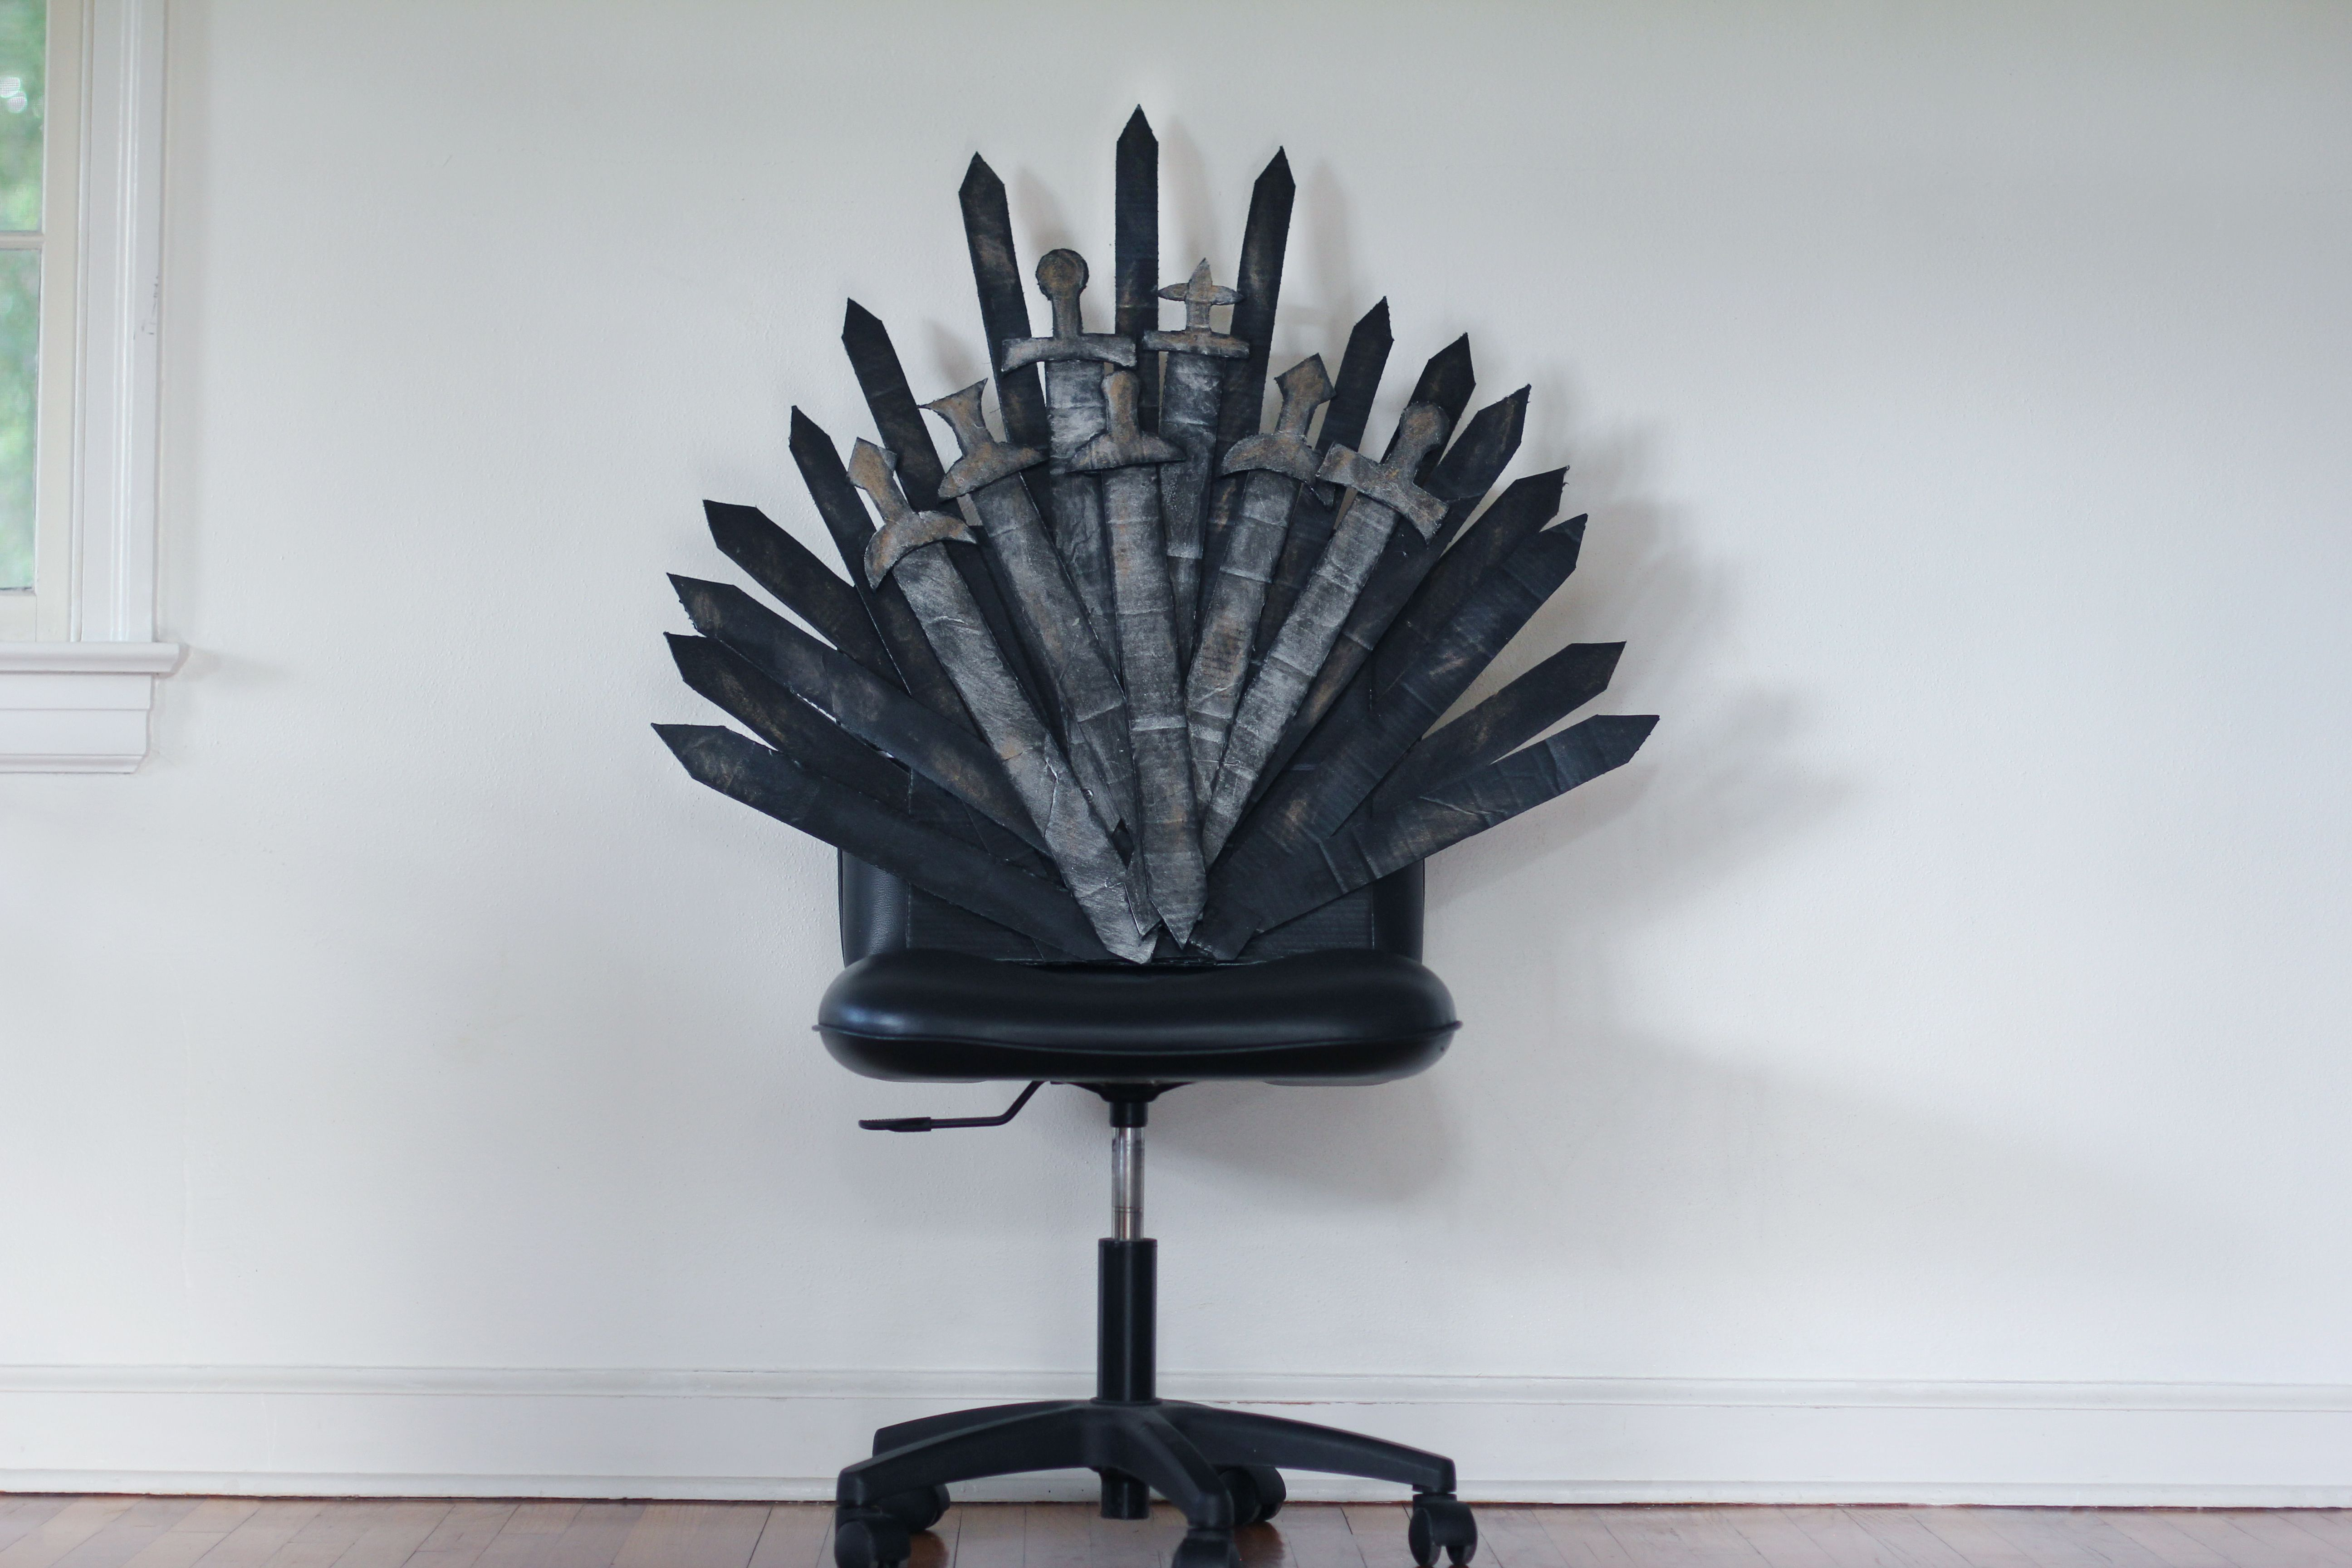 brand new 303f2 d8836 DIY 'Game of Thrones' Iron Throne Office Chair | Iron throne ...